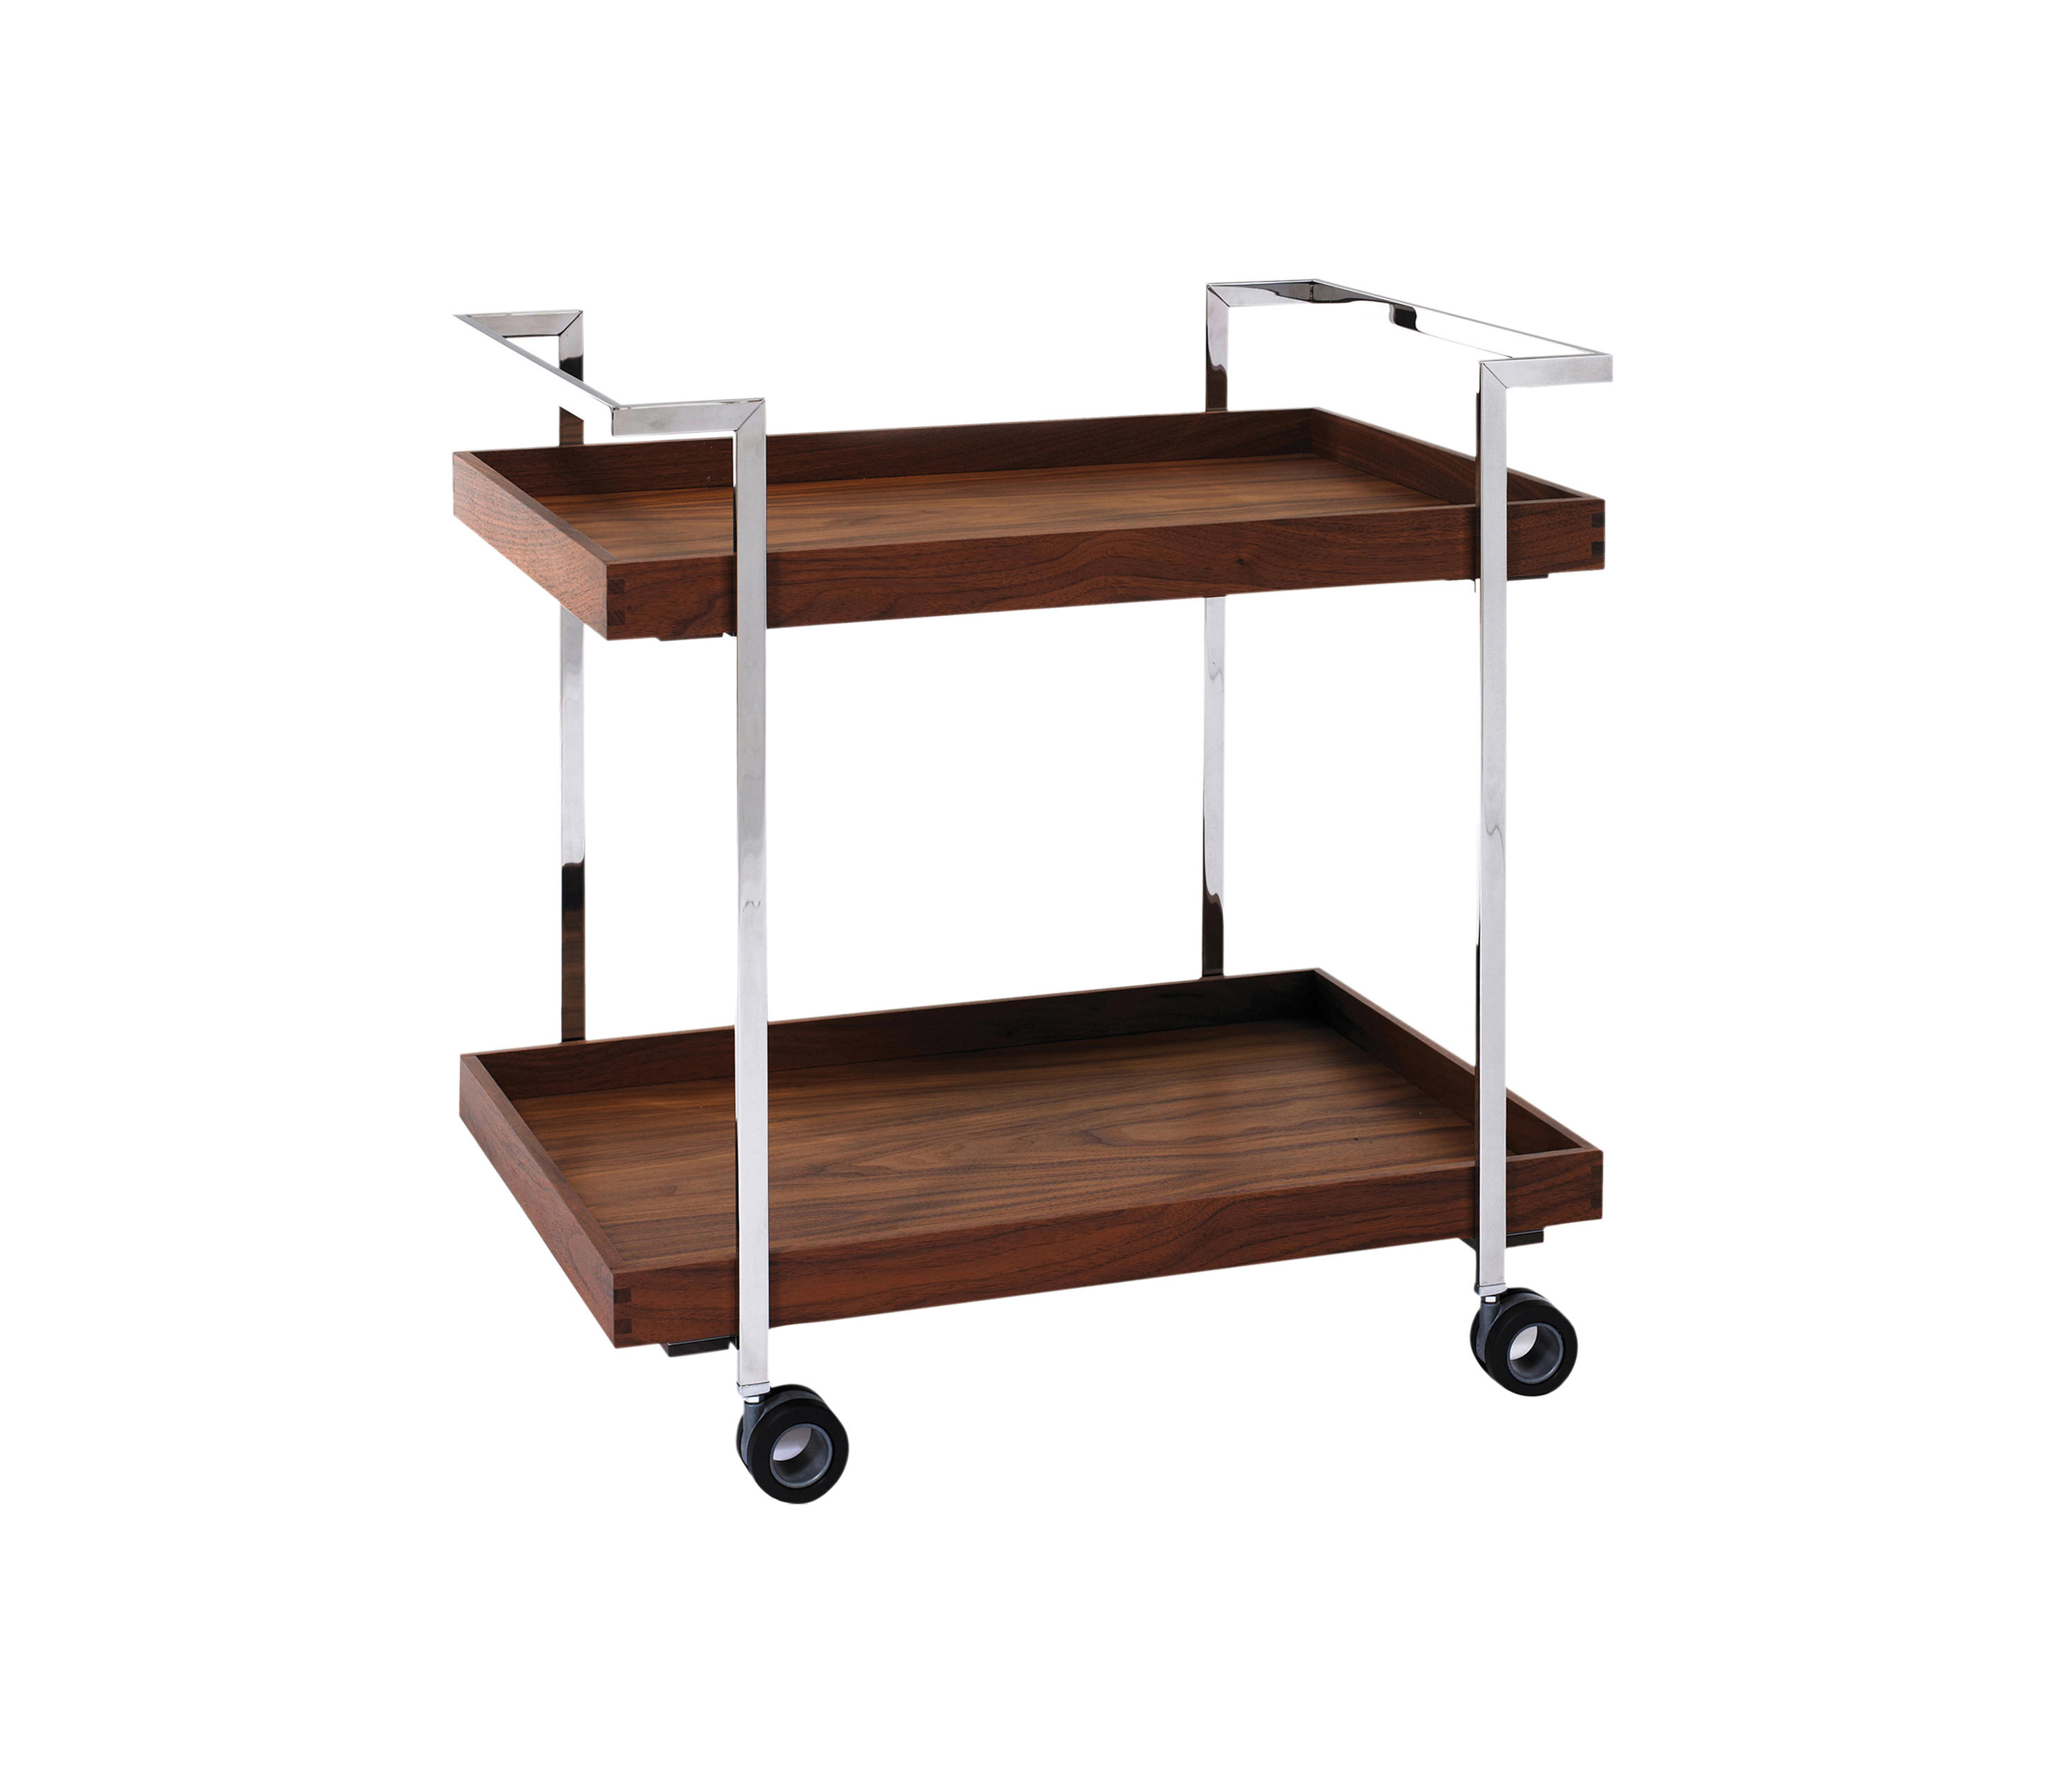 Exterior Home Design Studio Pioneer T63s Tea Trolley Trolleys From Ghyczy Architonic